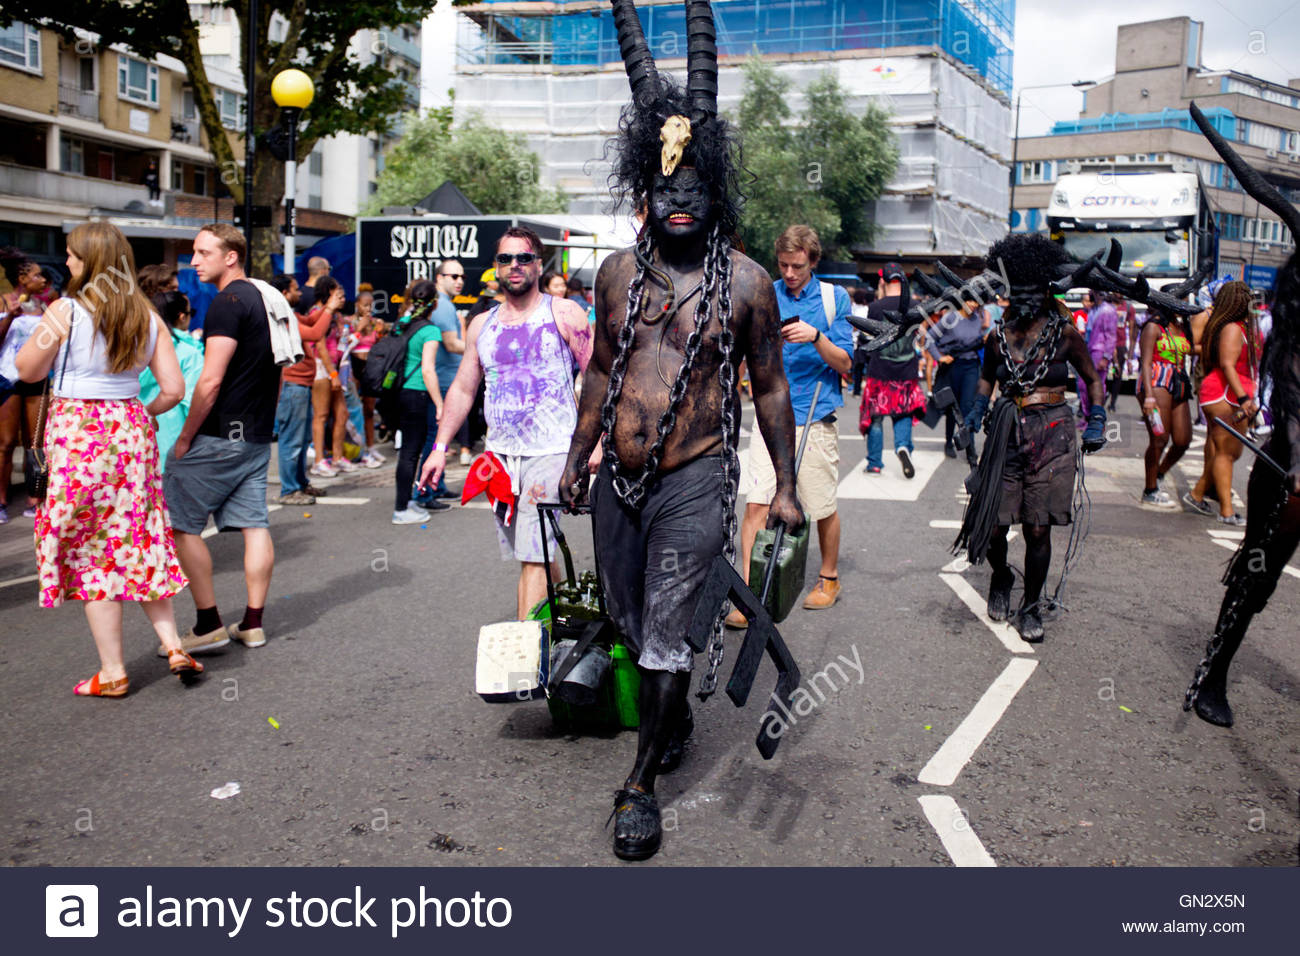 Reveler in costume at the 50th Notting Hill Carnival, London, 2016. Credit:  wayne Tippetts/Alamy Live News - Stock Image